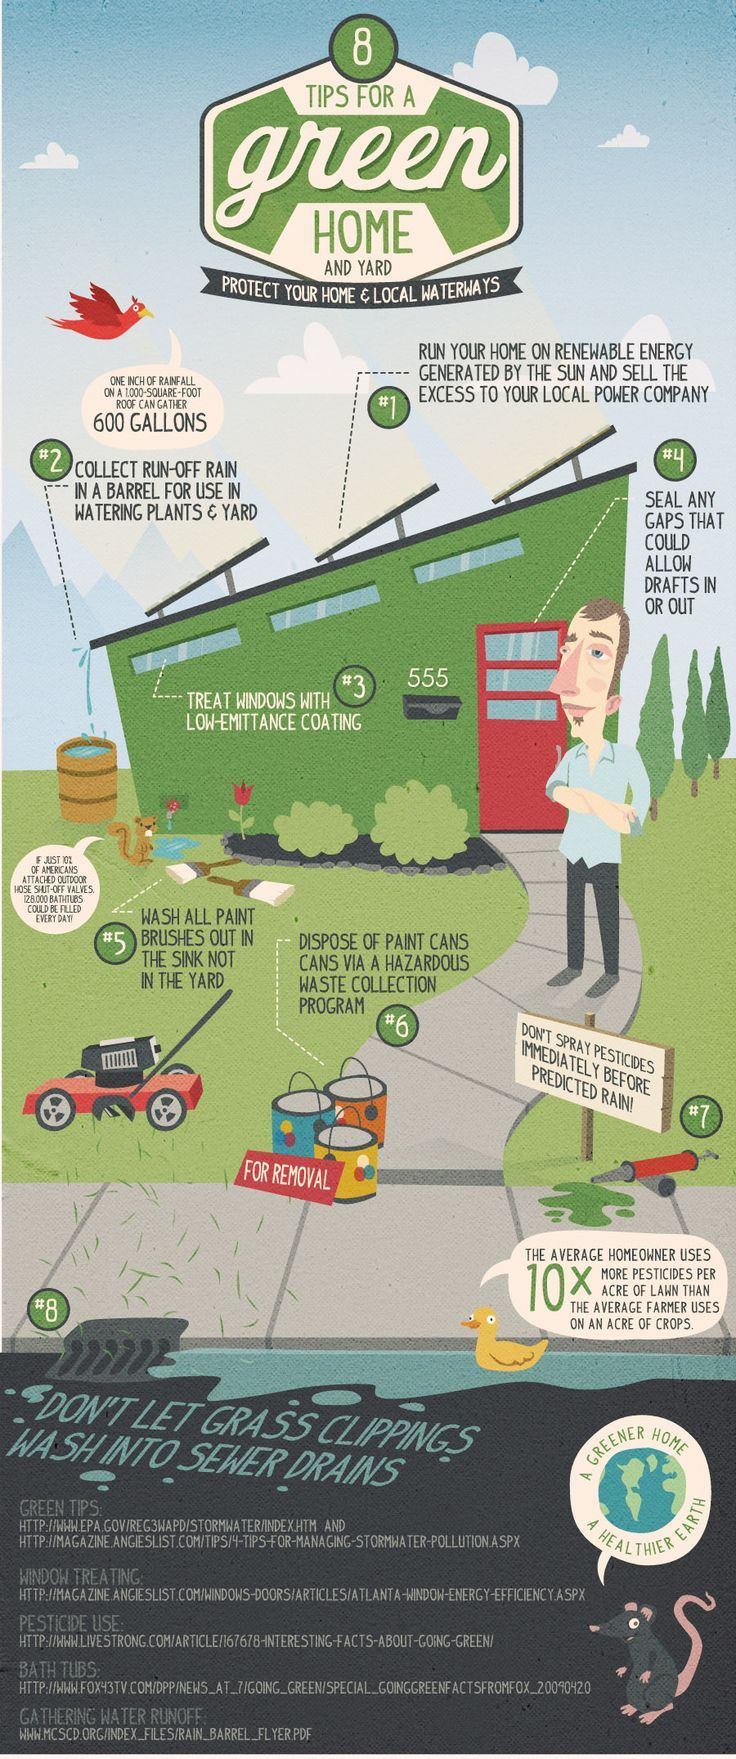 Go green with our new reclaimed teak western decor furniture available - 8 Tips For A Green Home And Yard Infographic